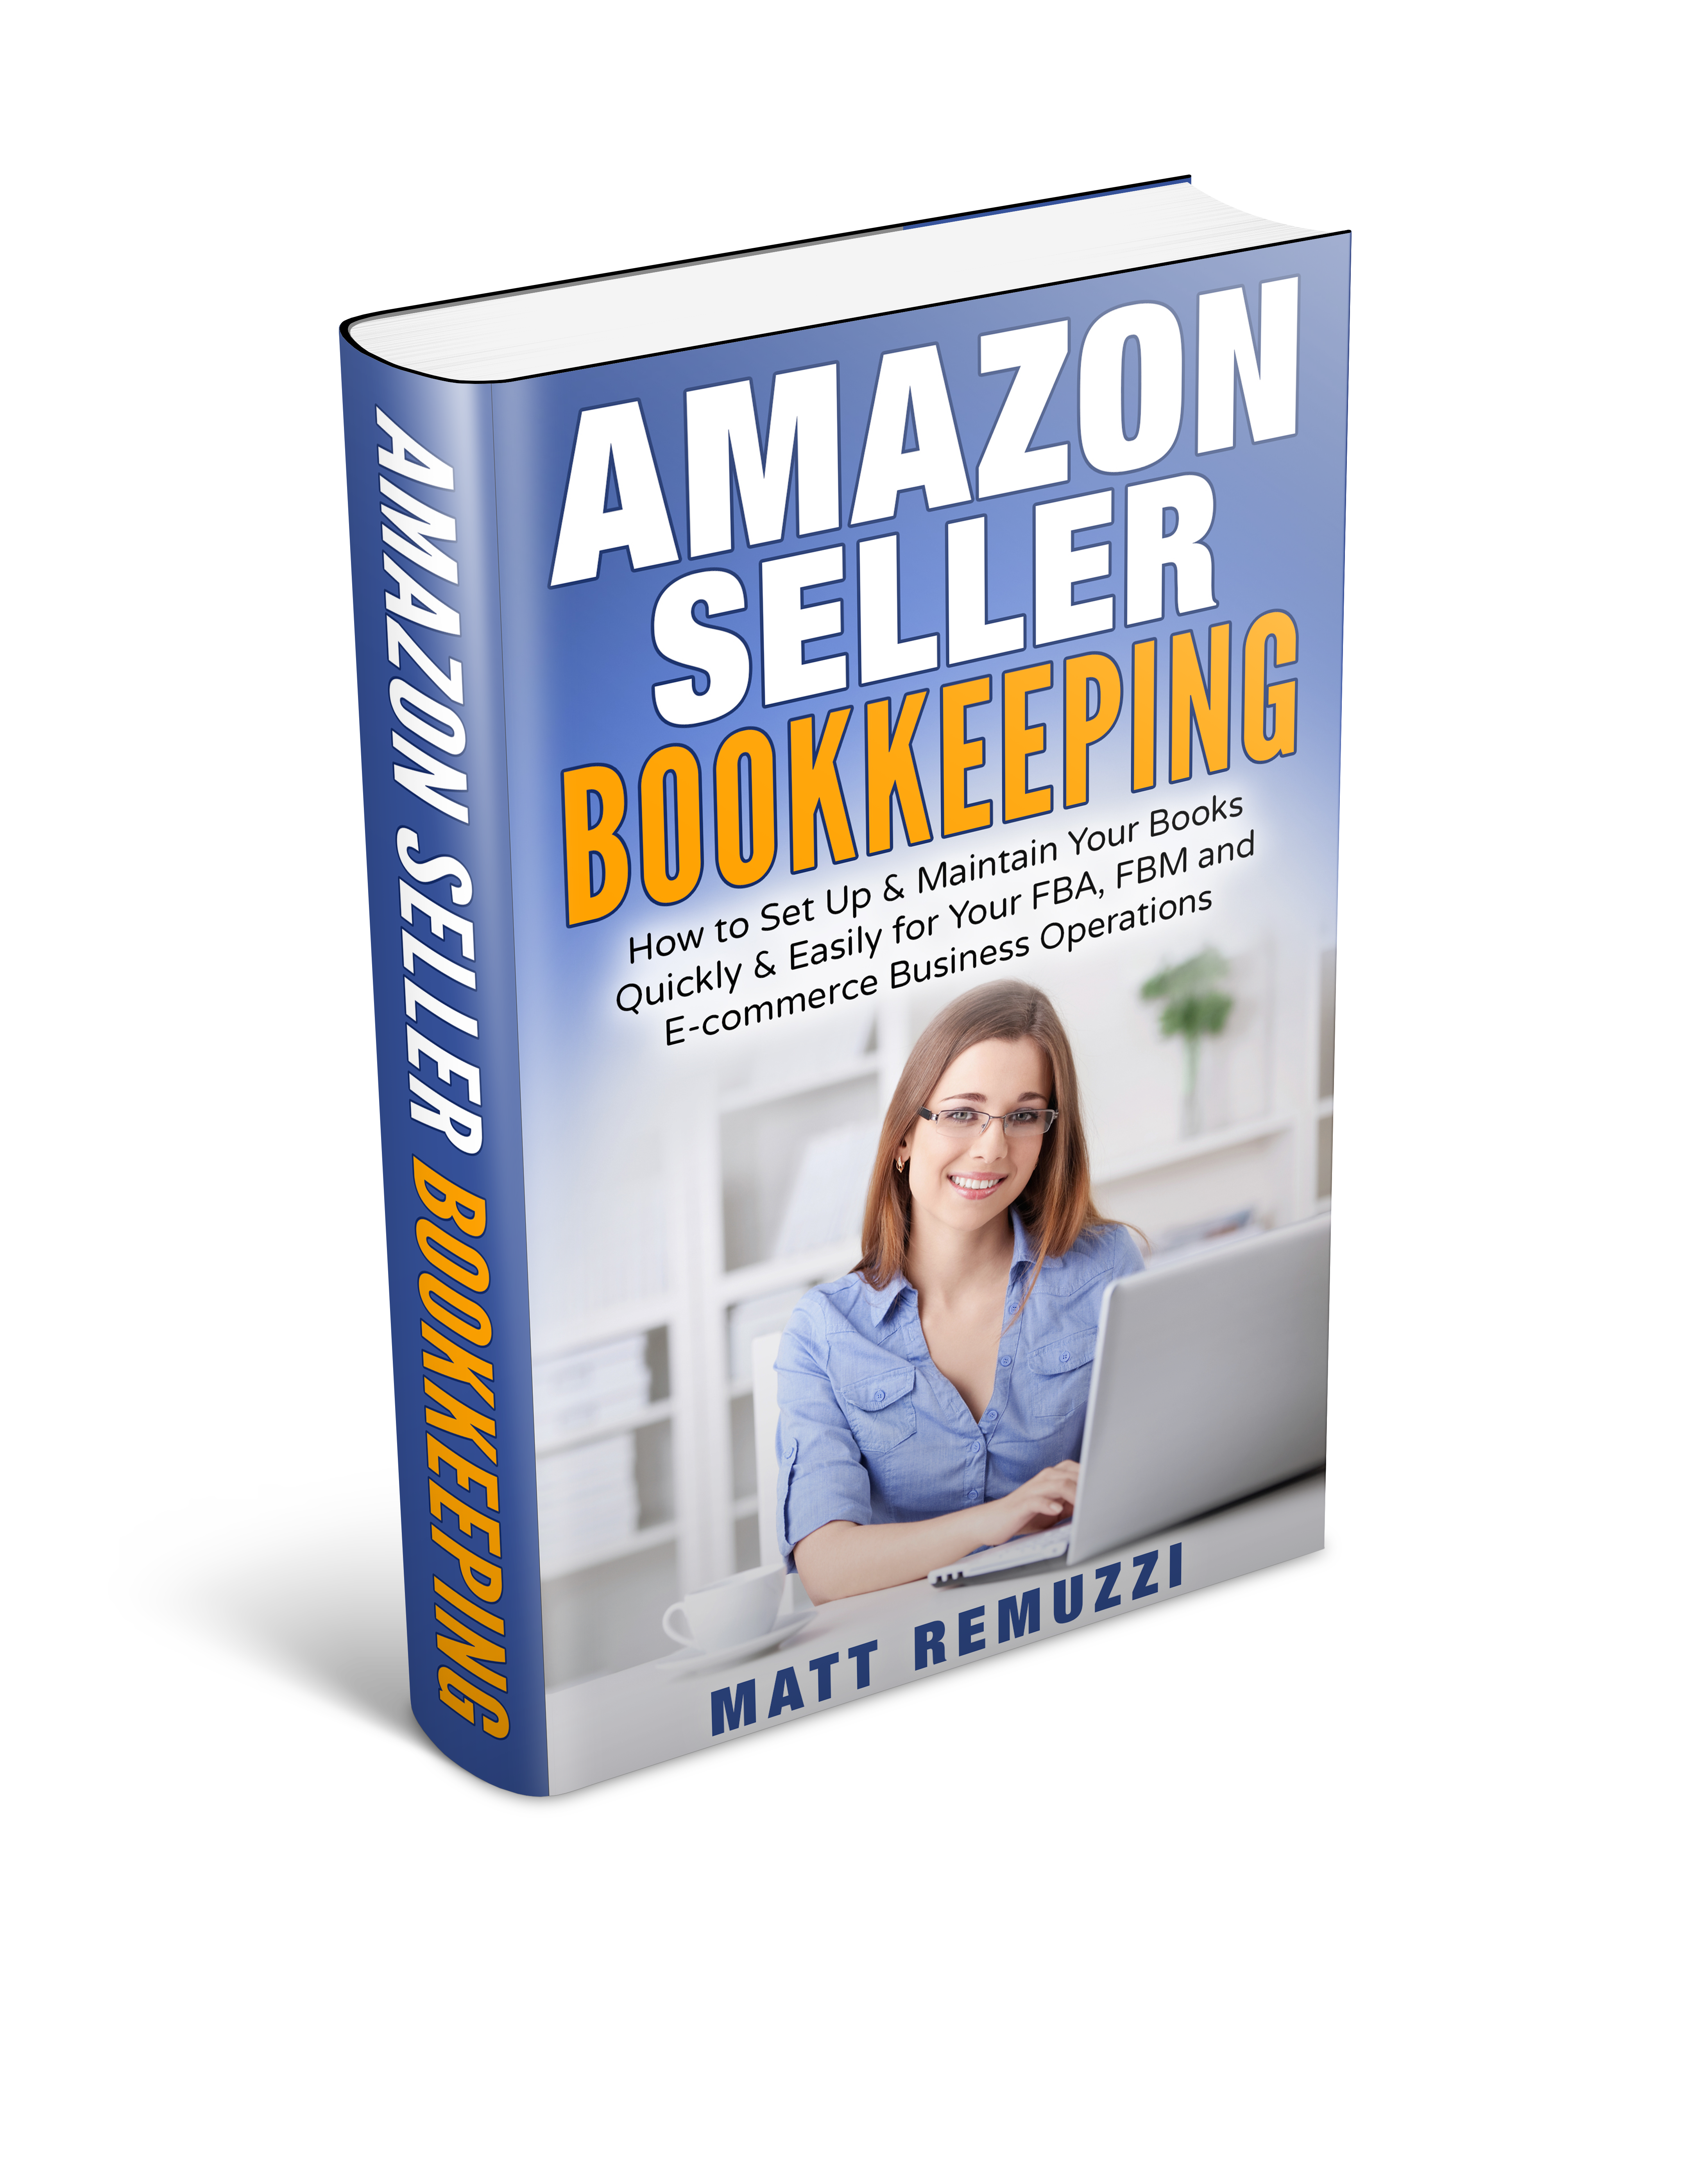 Amazon Seller Bookkeeping Book is Now Live on Kindle